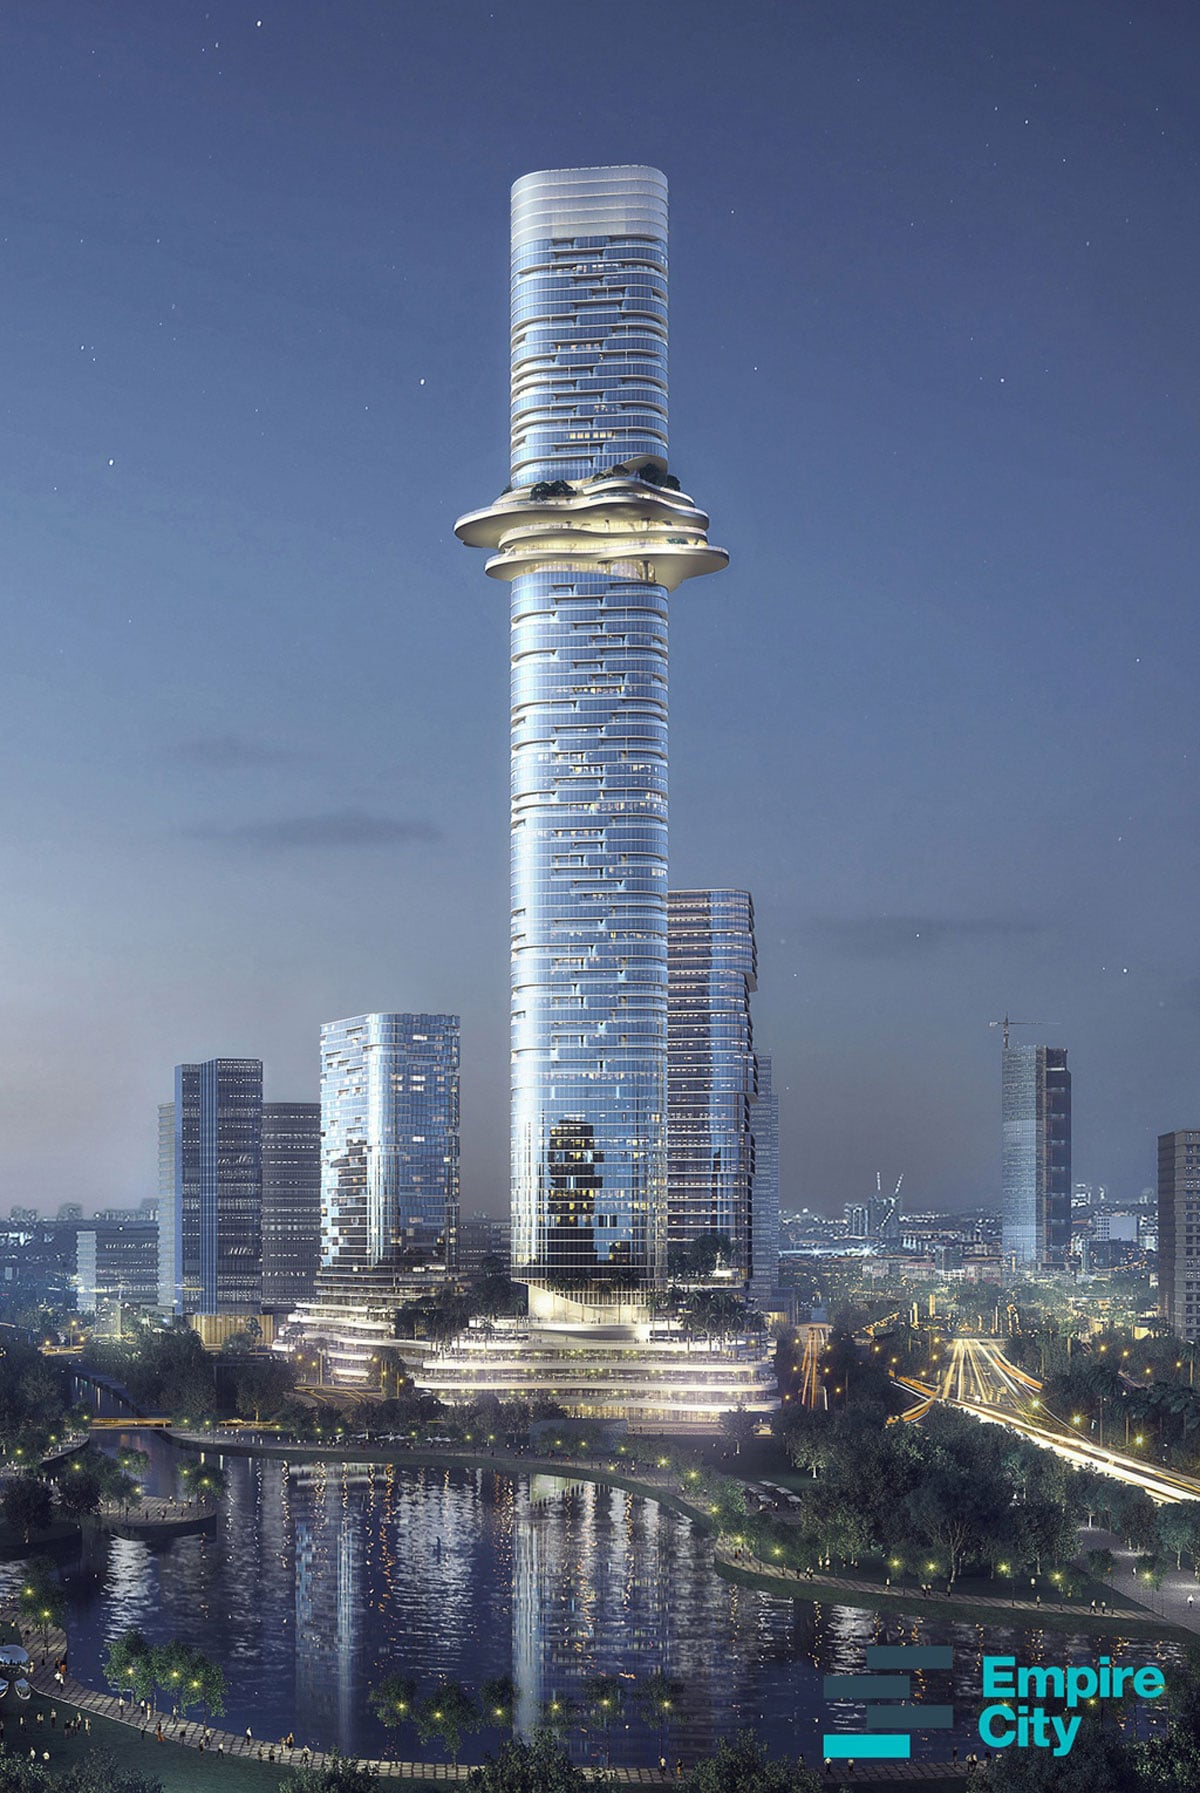 toan canh toa thap Empire 88 Tower cao nhat viet nam - TÒA THÁP CAO NHẤT VIỆT NAM EMPIRE 88 TOWER